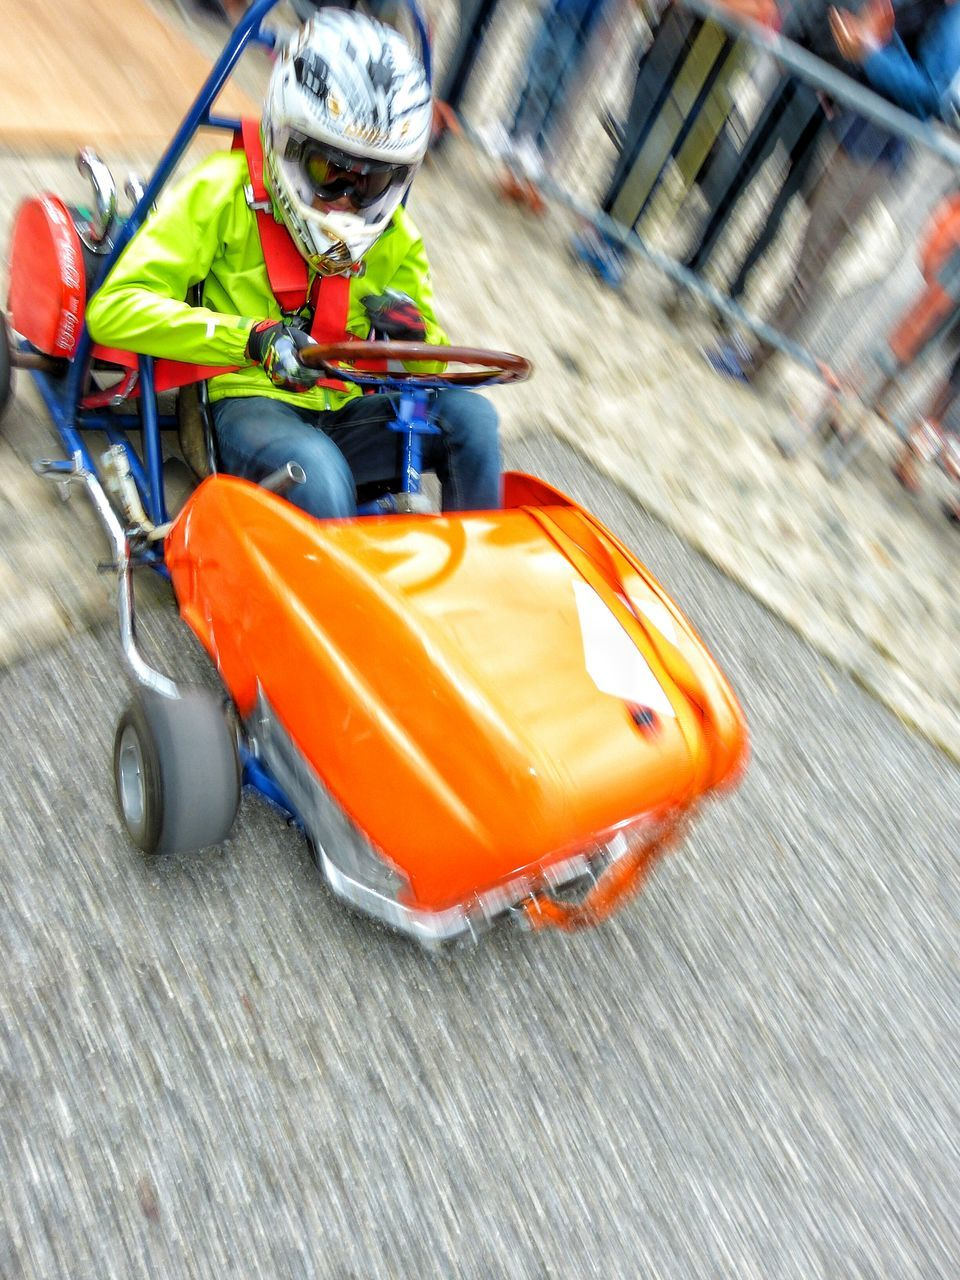 blurred motion, speed, sports race, motion, outdoors, day, motorsport, one person, competition, auto racing, racecar, people